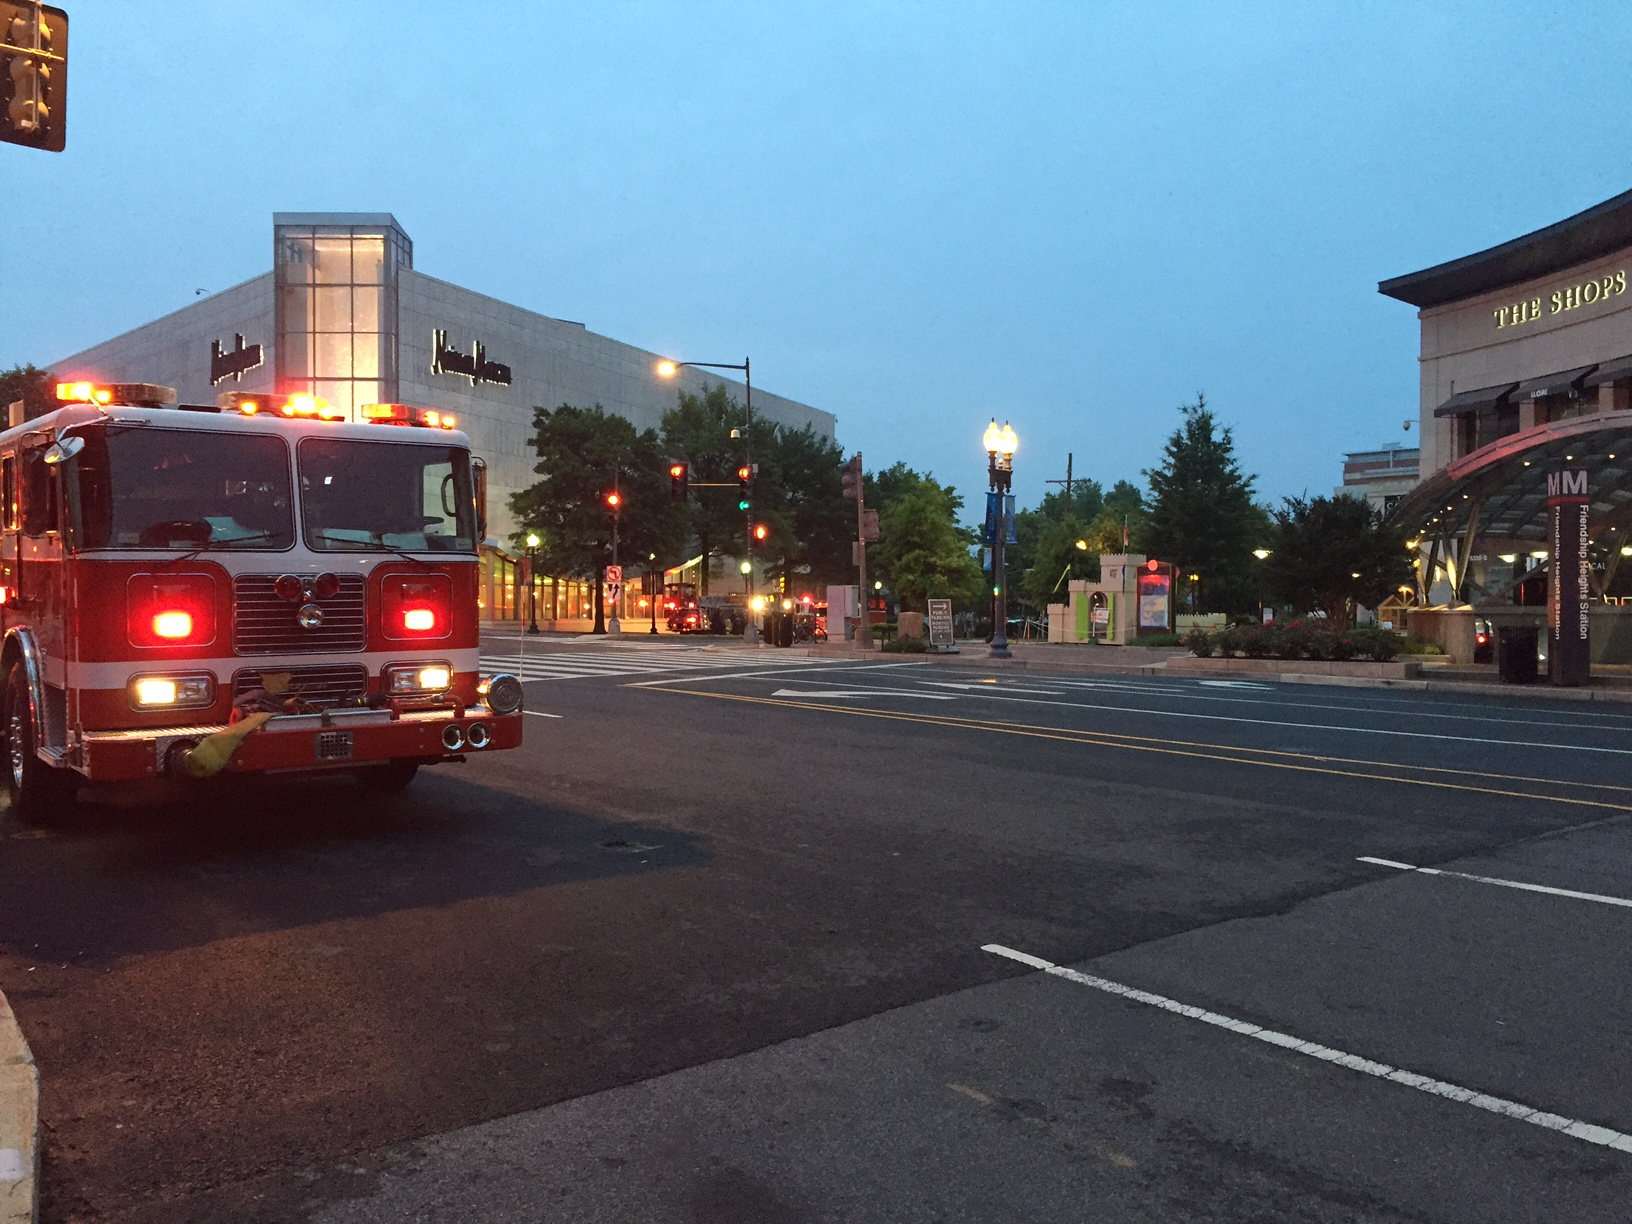 2 arcing insulator problems reported at Metro stations